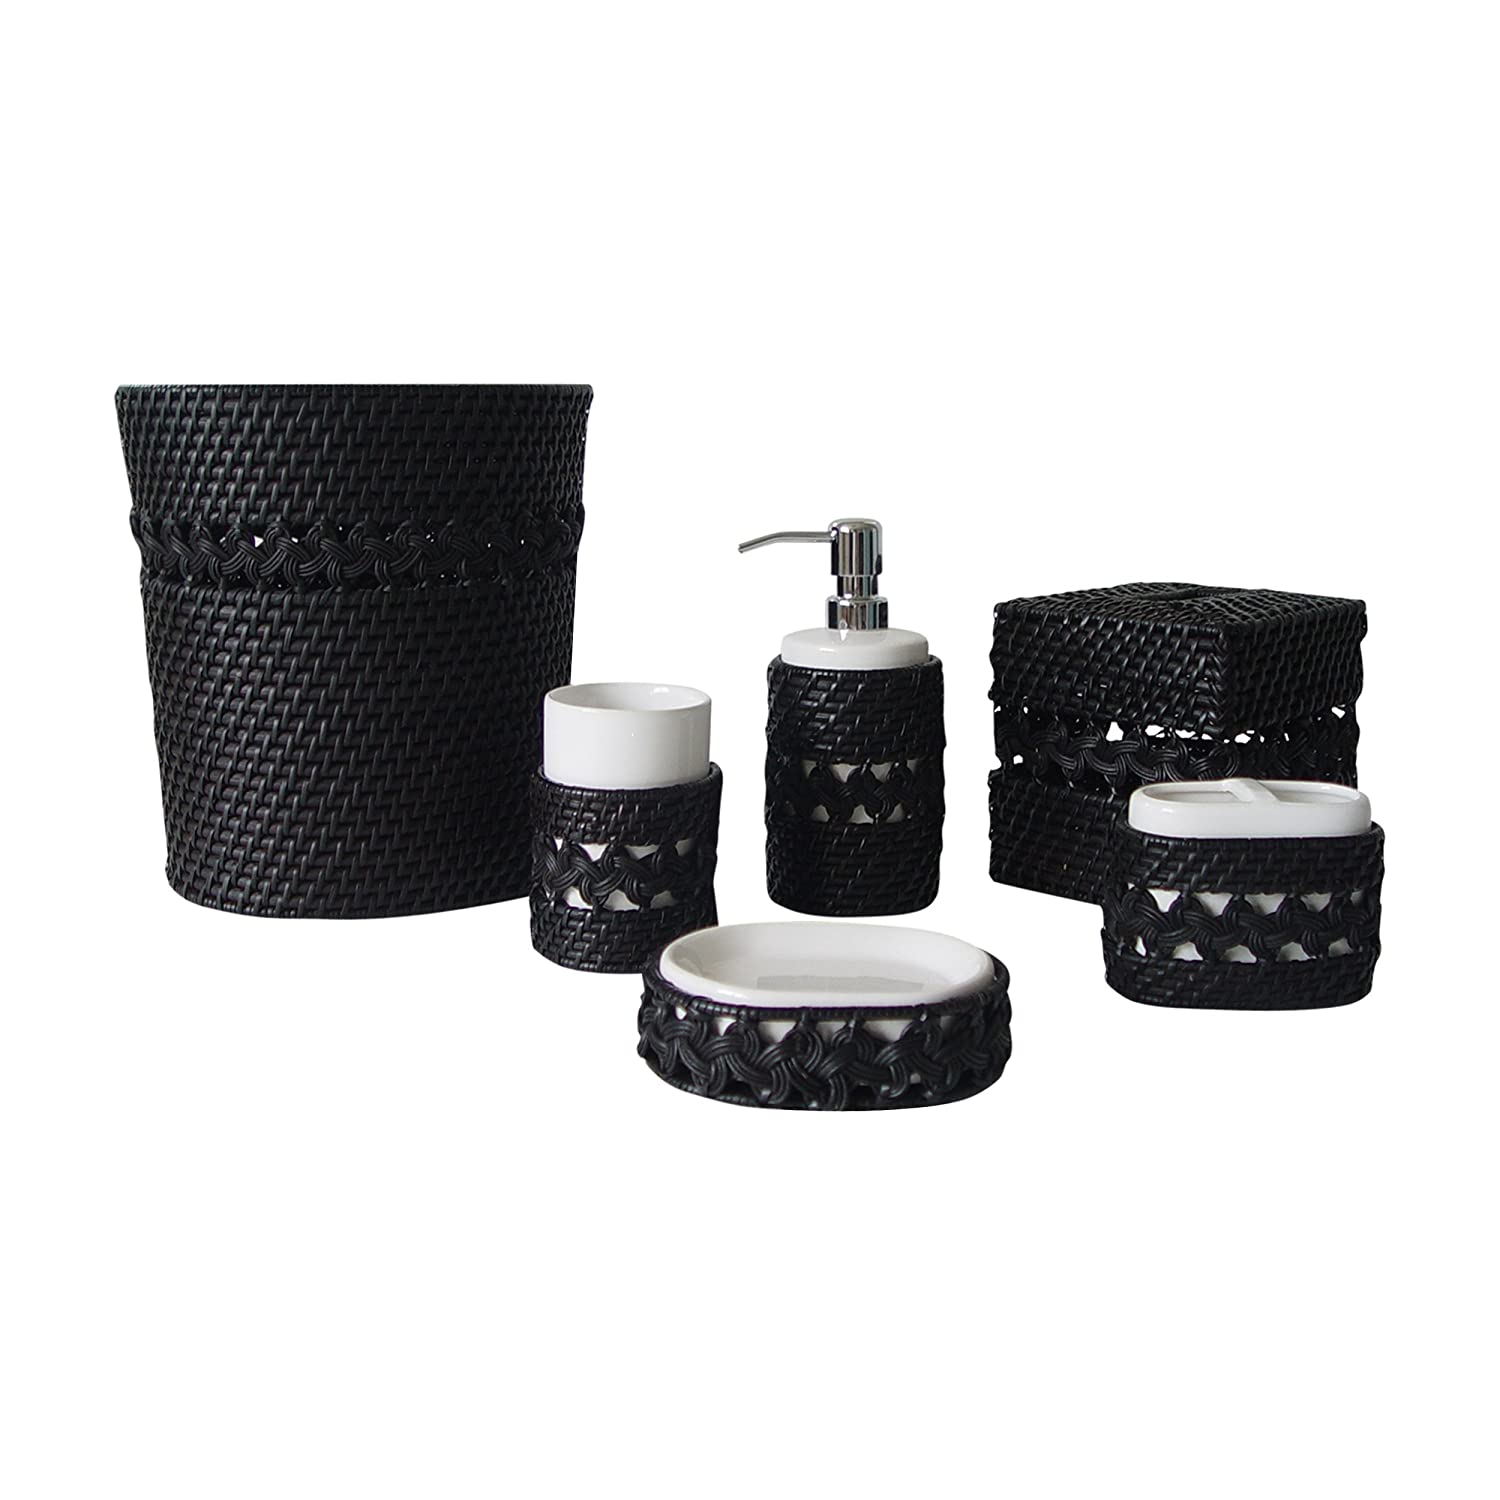 Check price check price check price for Bathroom accessories set